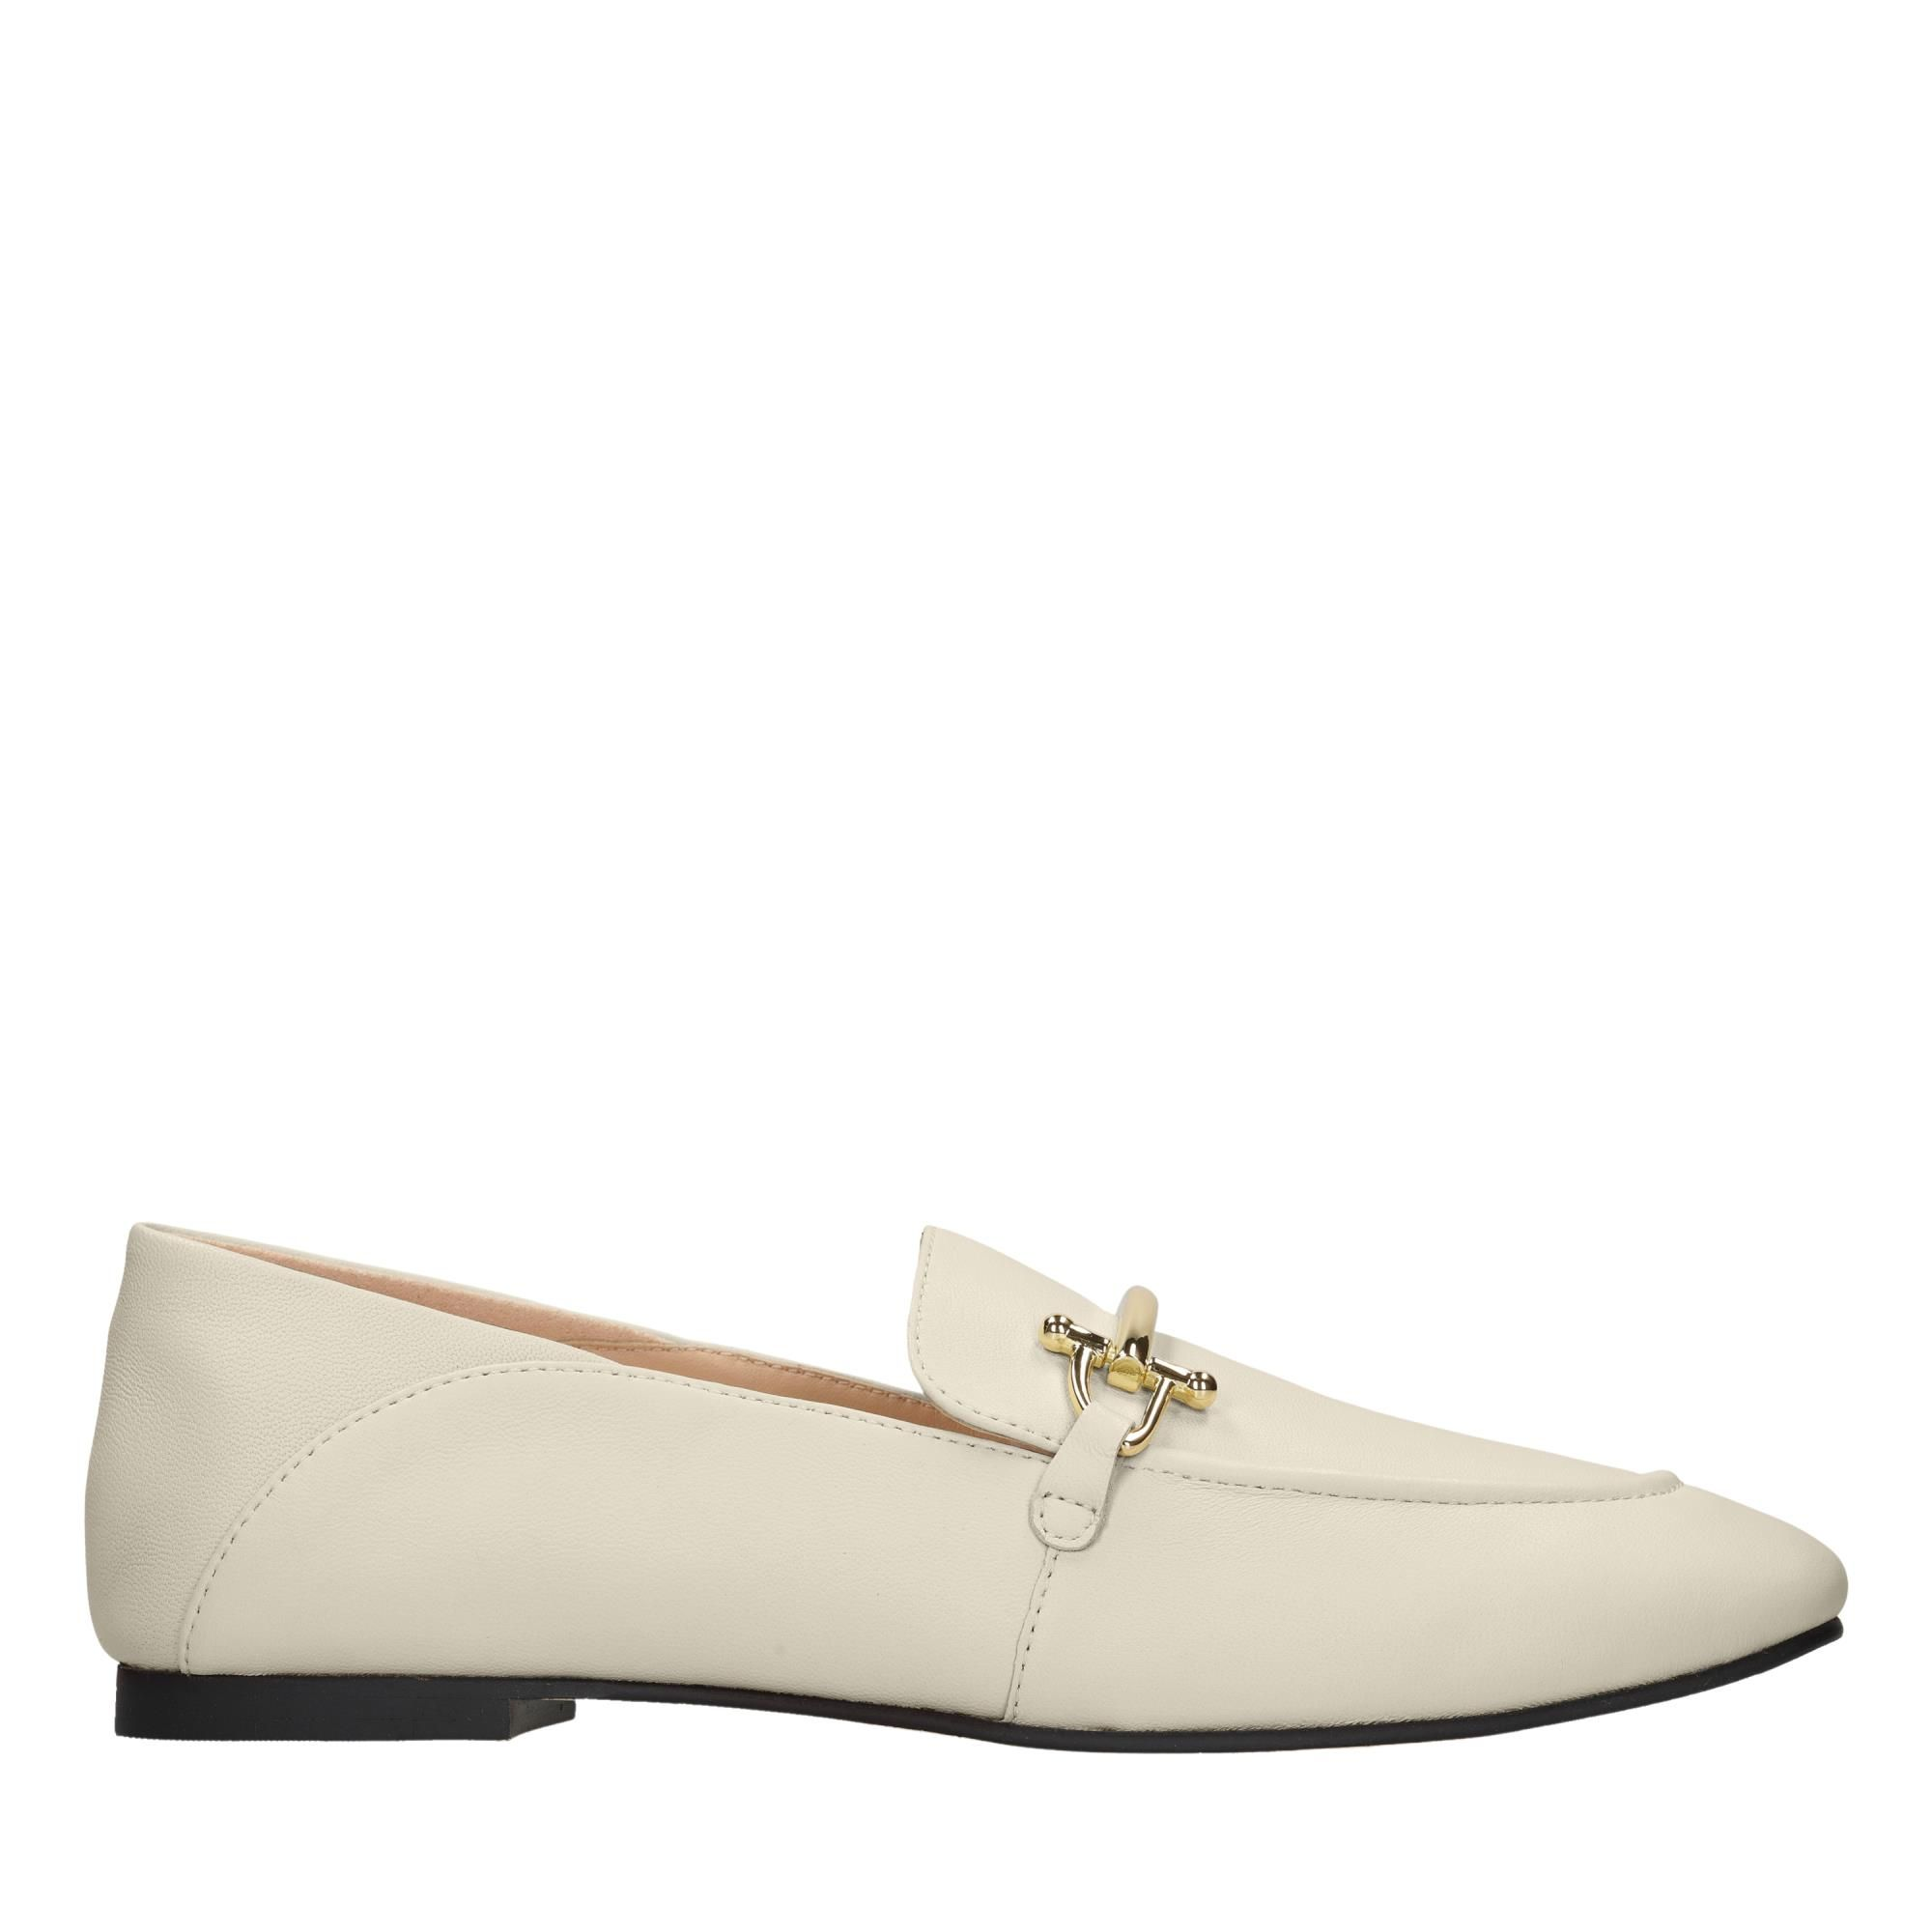 Clarks Pure2 Loafer 26151828 White Leather